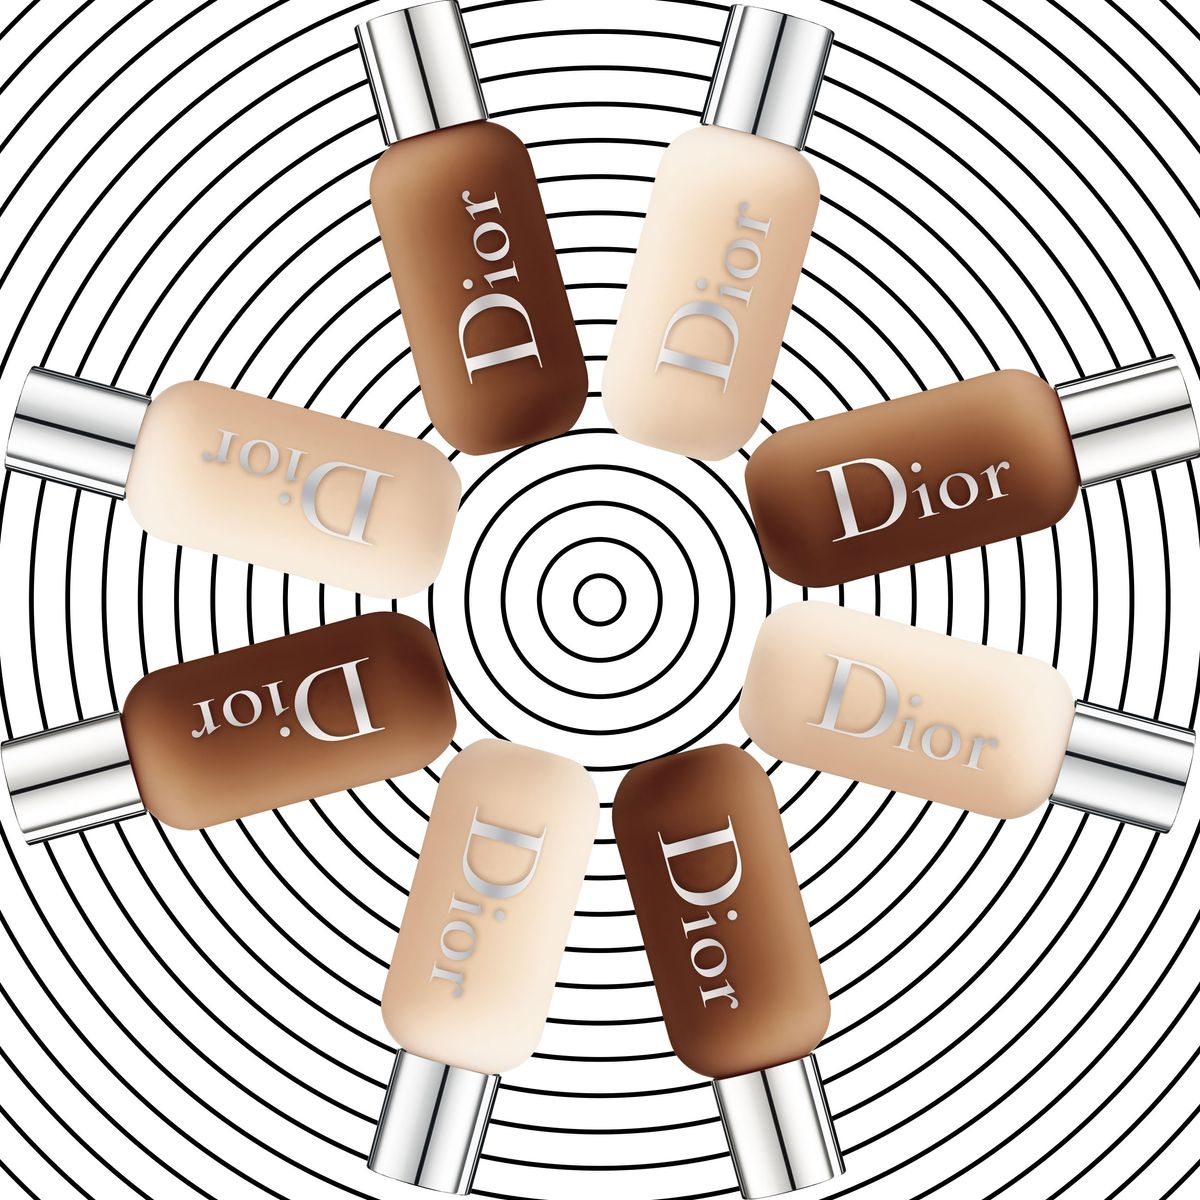 Dior Launched 40 New Foundation Shades At Dior Cruise 2019